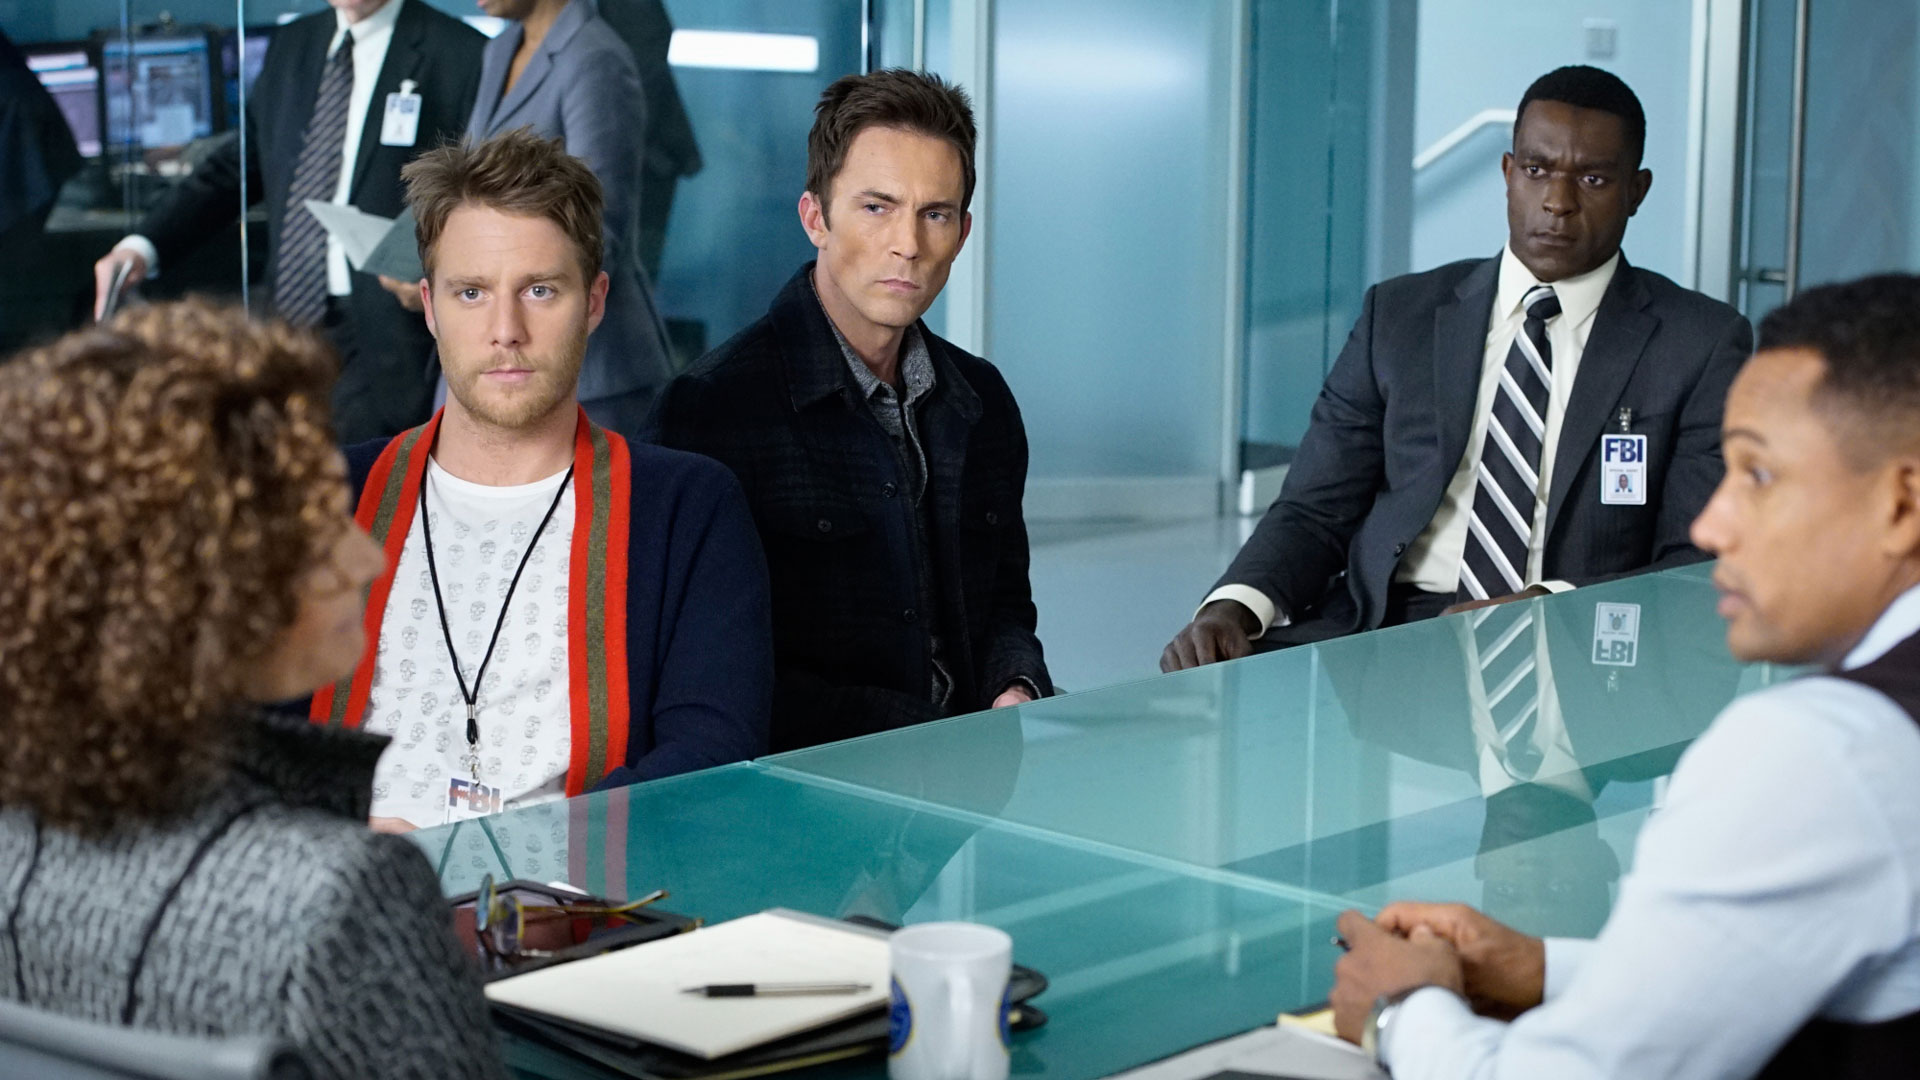 Jake McDorman as Brian Finch, Desmond Harrington as Agent Casey Rooks, and Hill Harper as Agent Spelman Boyle